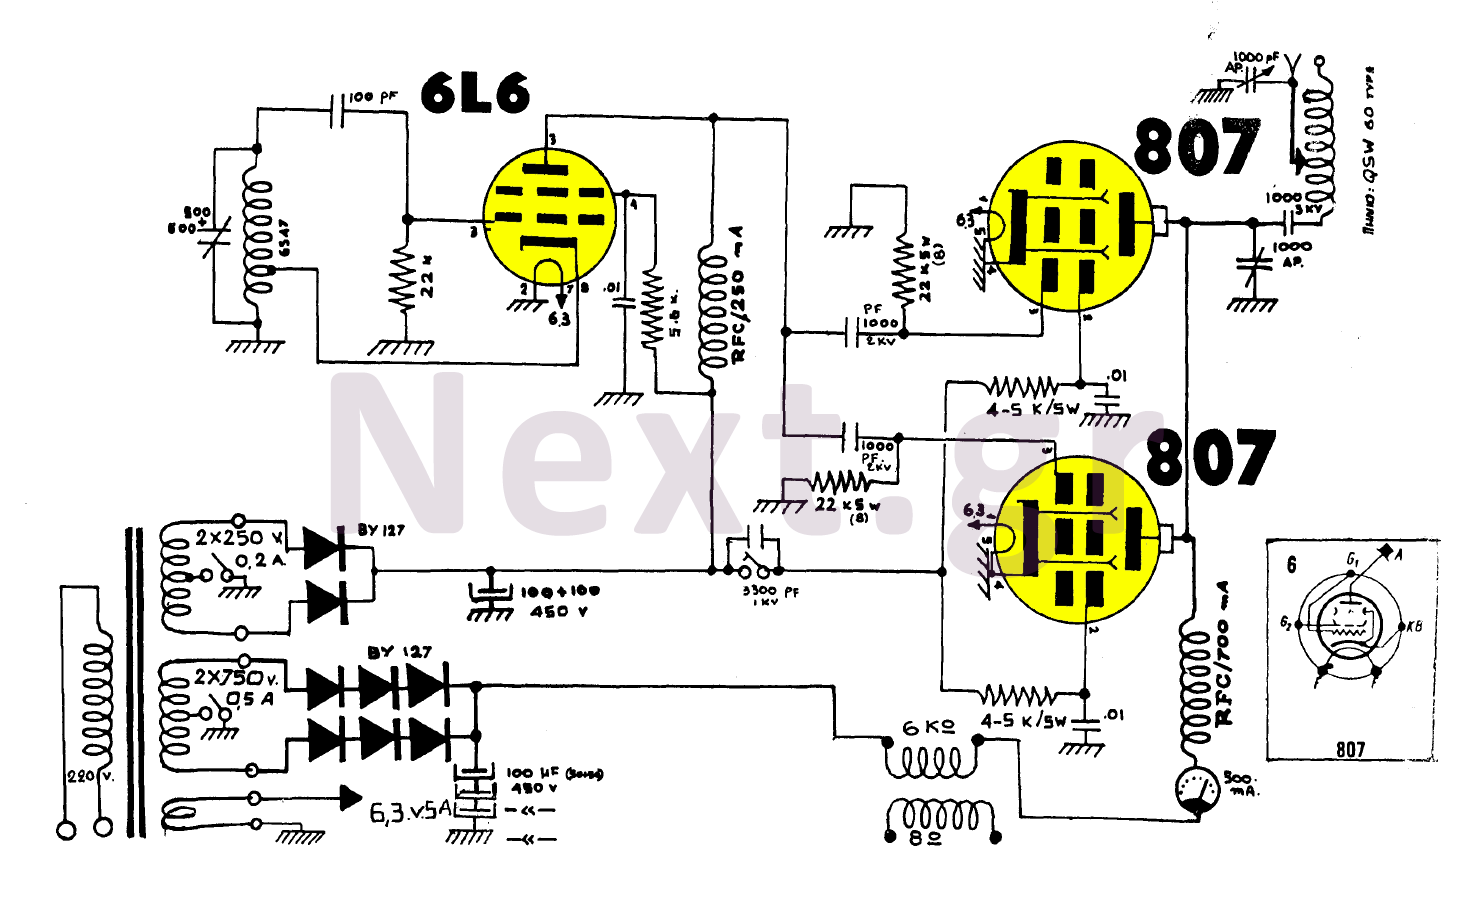 Vacuum Tube Wiring Diagram Library 4xblack Push Button Switch Off On Circuit Momentary 3a 250v Car Dash 100w Am Valve Transmitter Vacuums Buxus Music Speakers